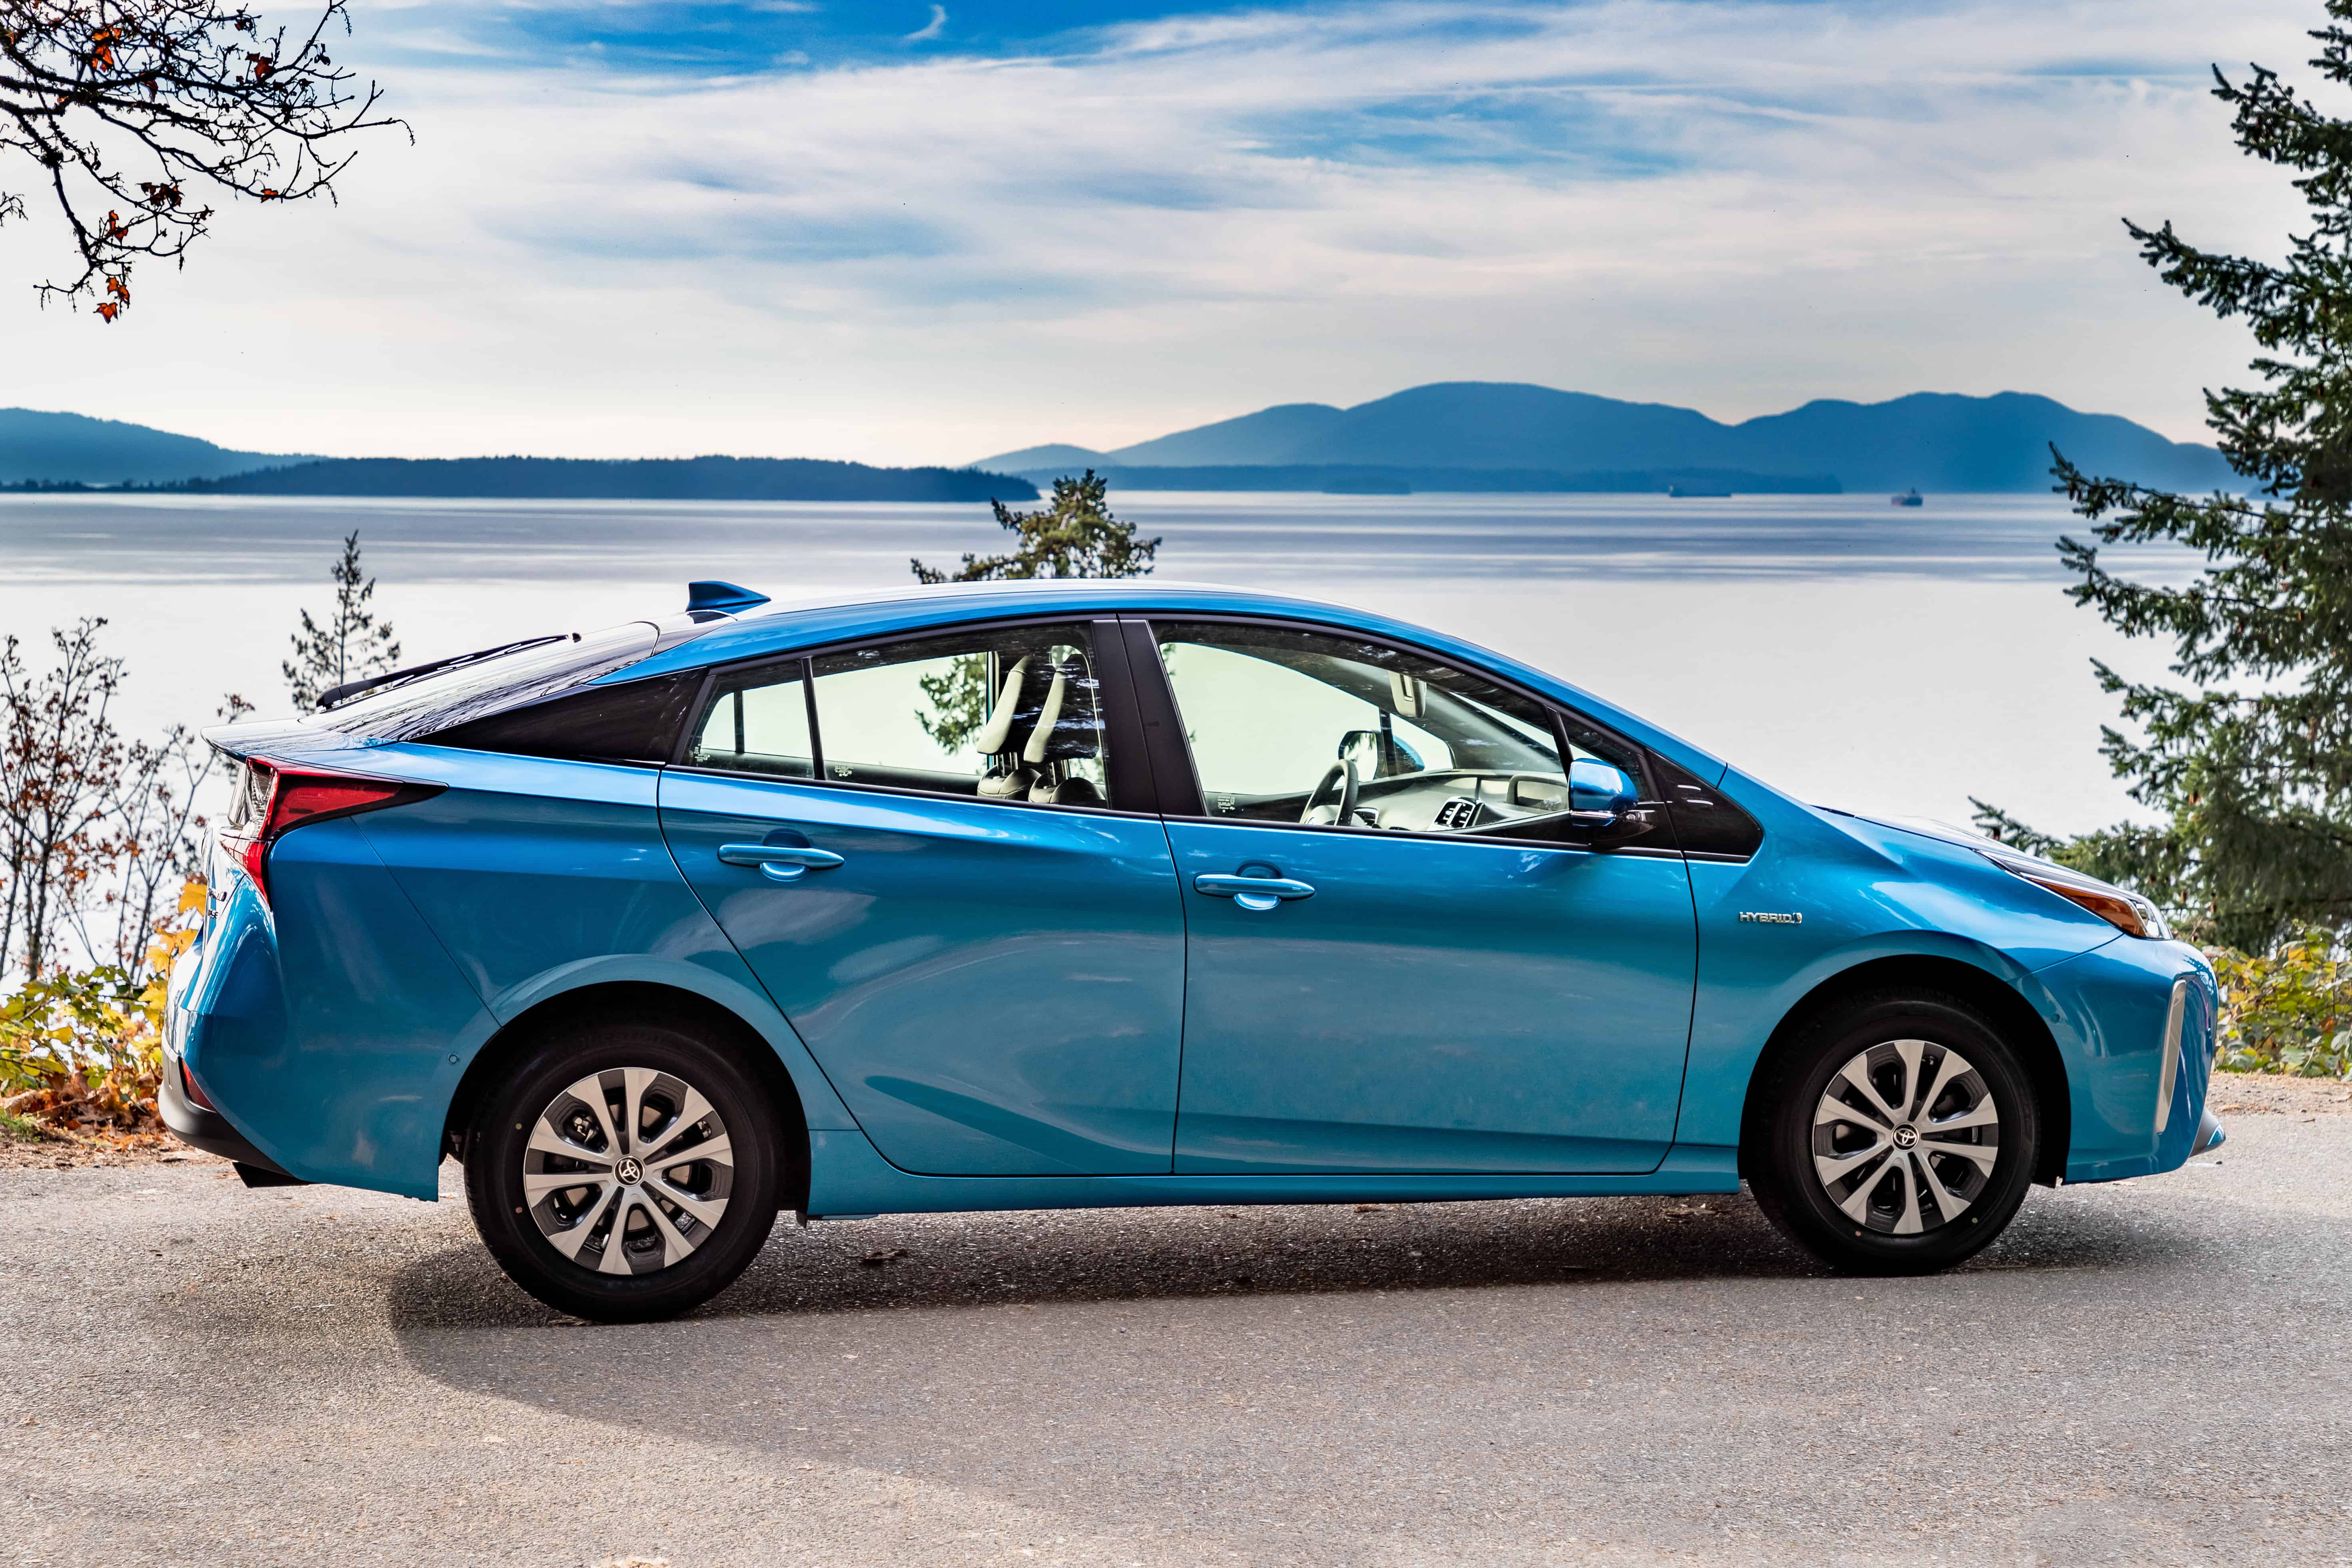 Toyota Recalls Nearly 4,400 Corolla Hatchbacks Due to Major Transmission Issue